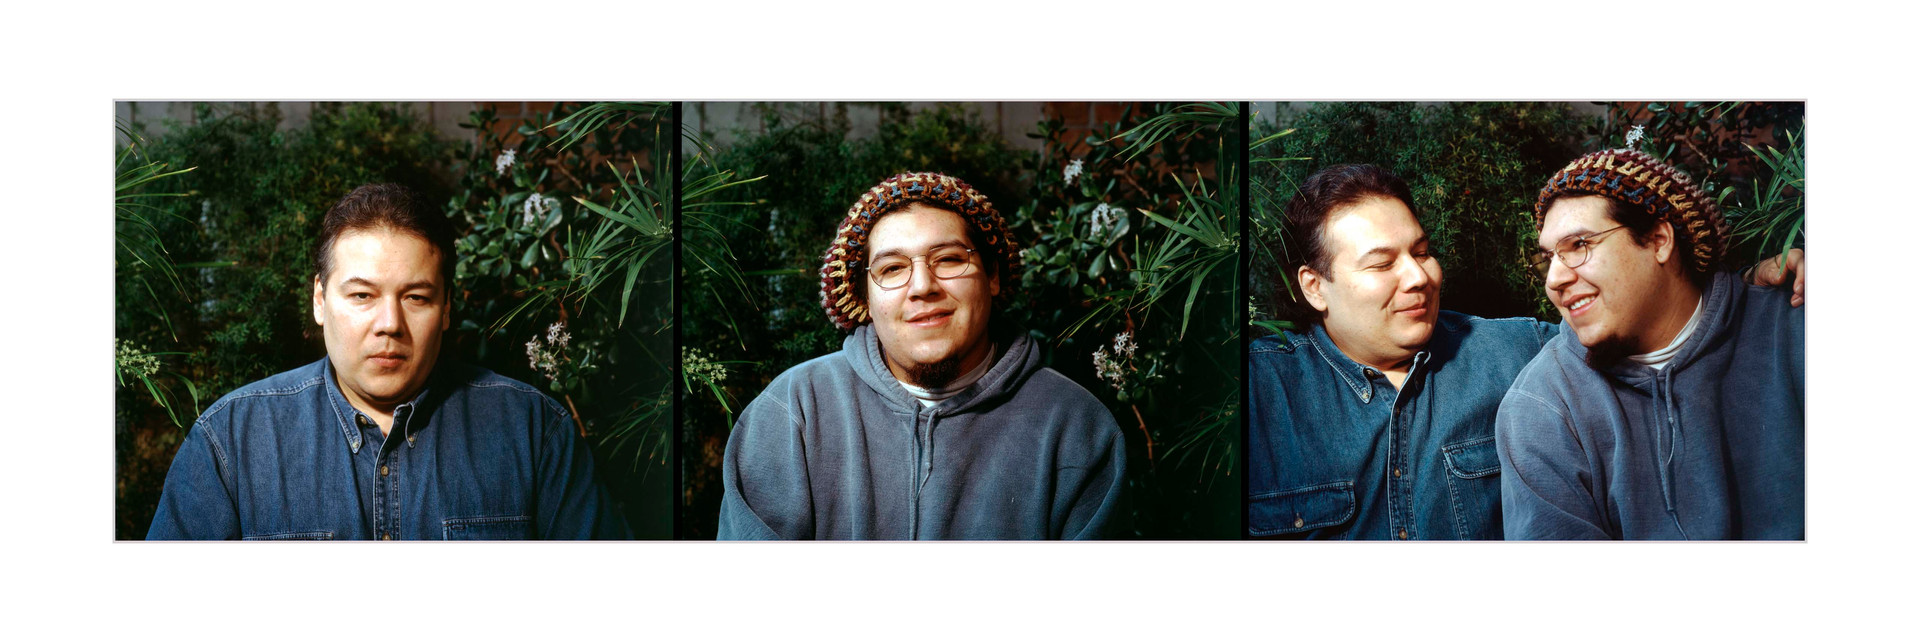 Father/Son Triptych, Jeff and his son, Bear, Ottawa, Ilfochrome print, 1998.